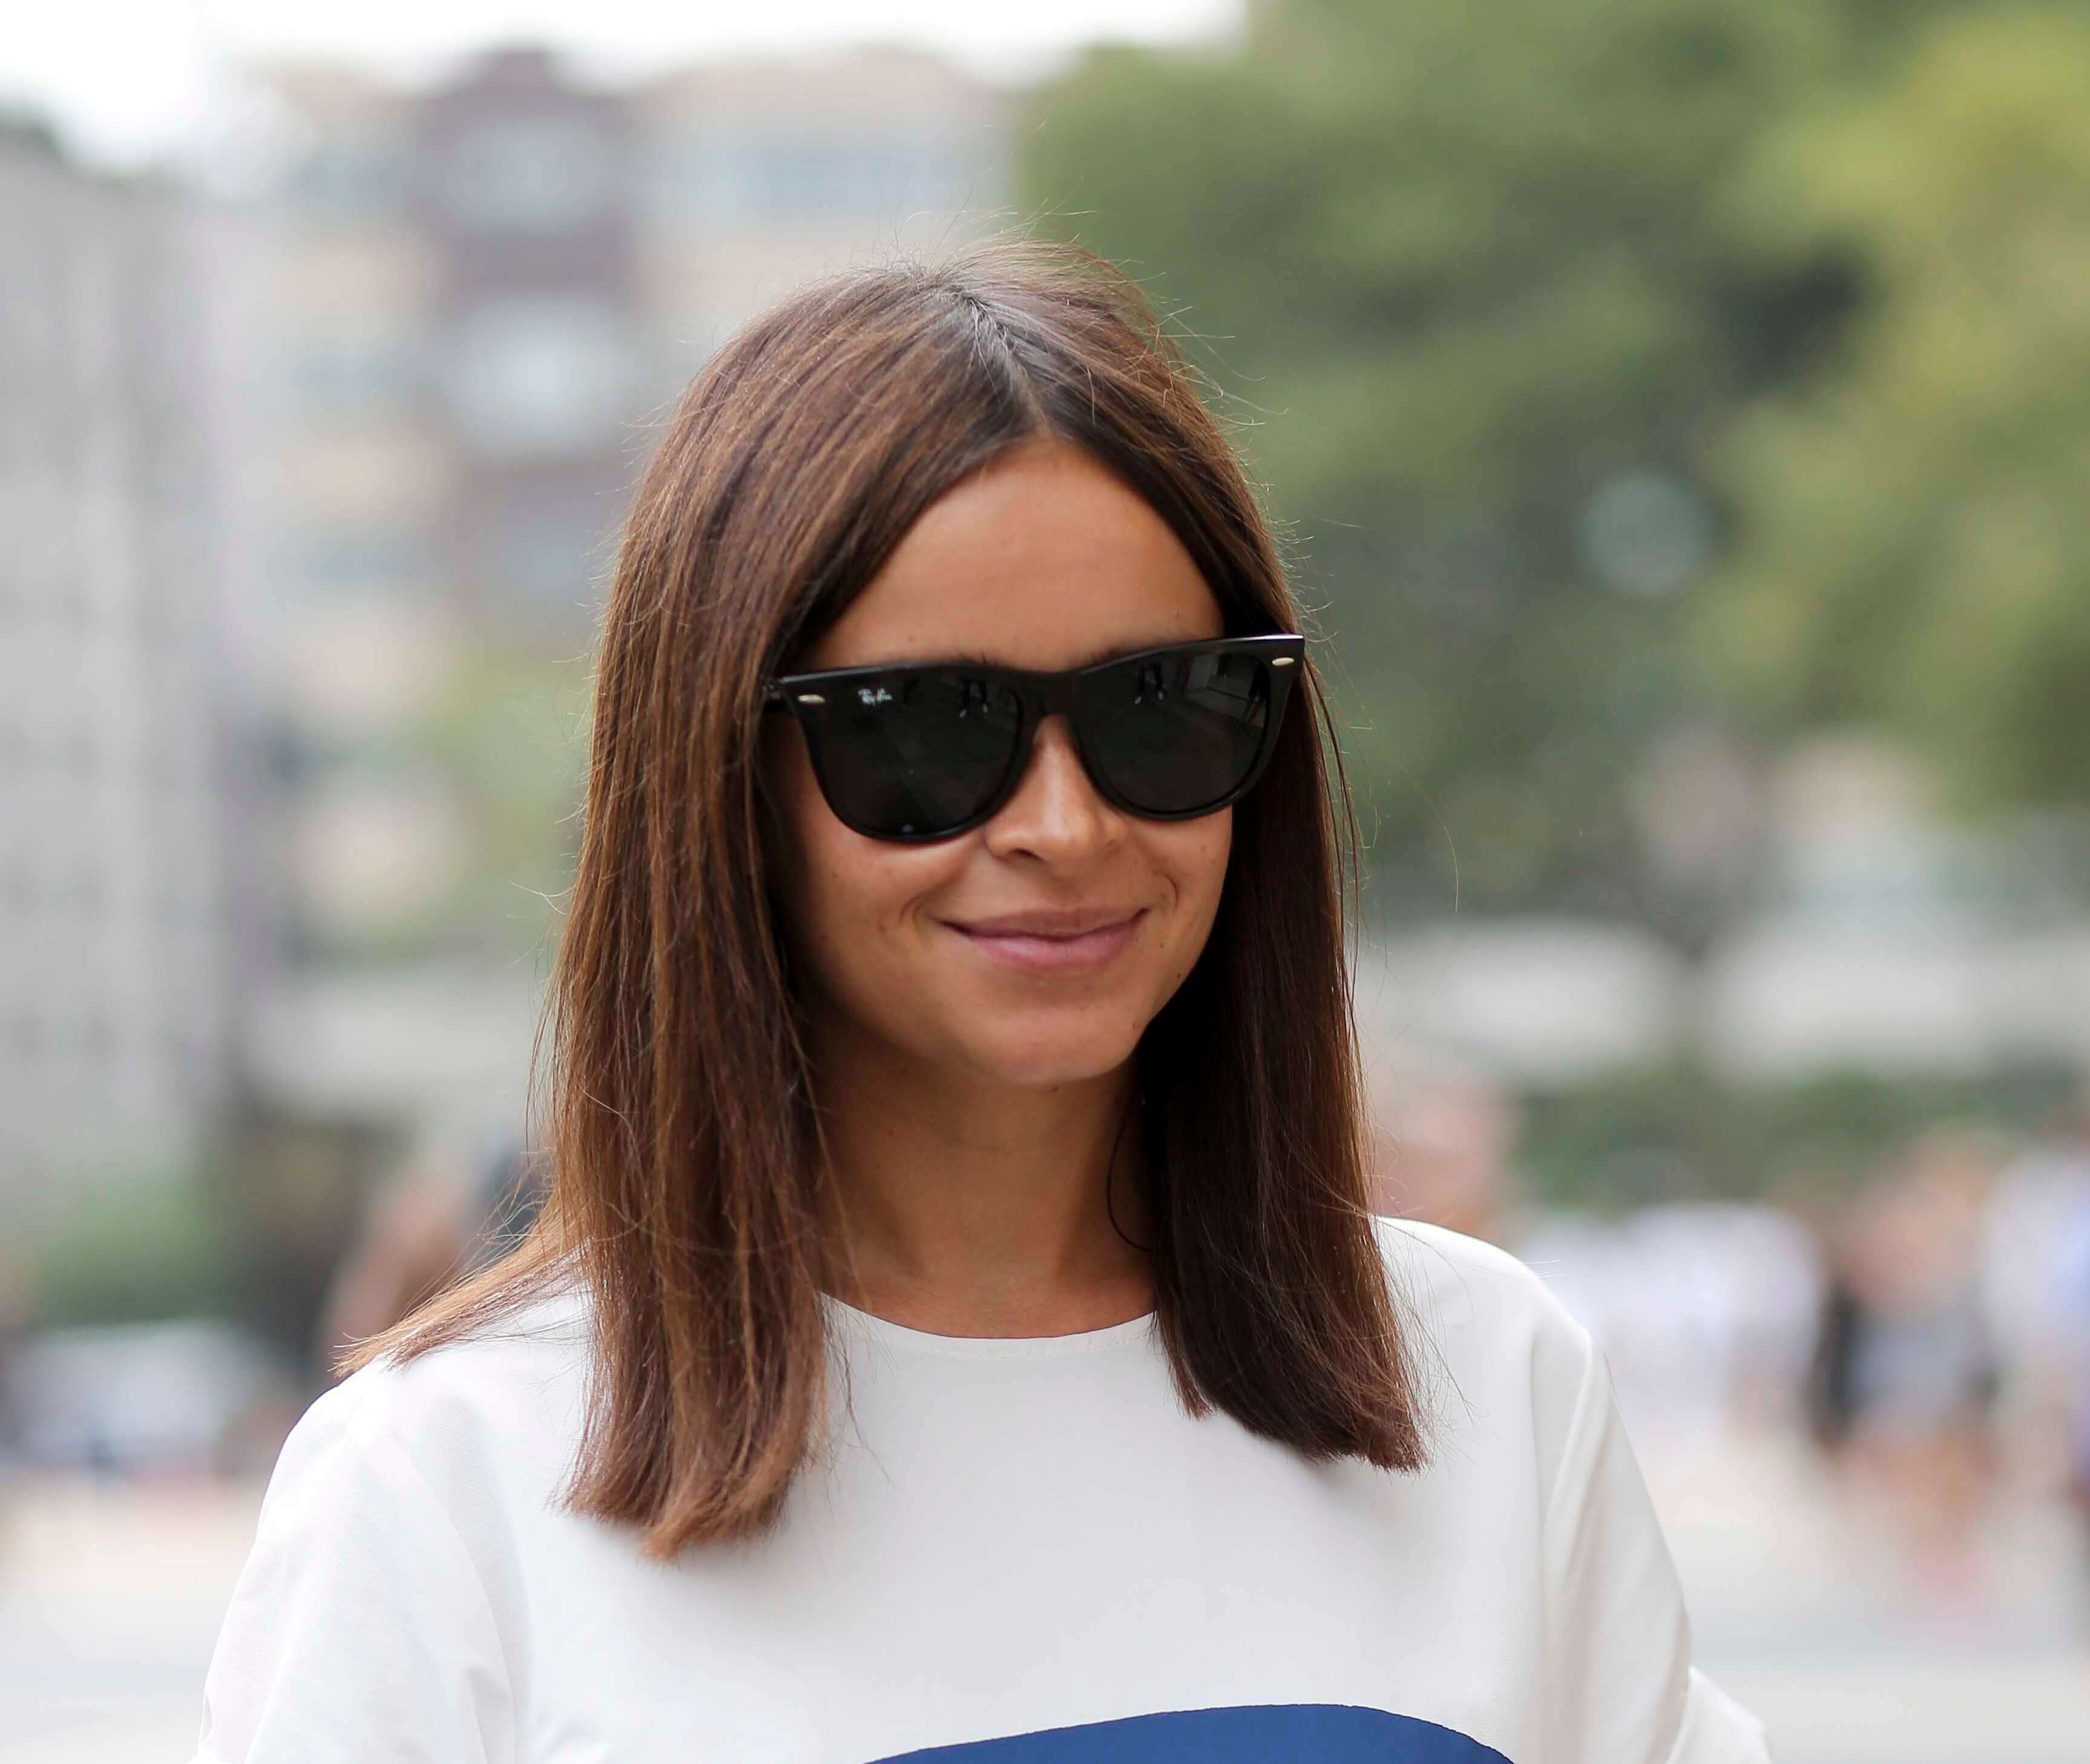 Medium length hairstyles 7 Effortlessly cool hair ideas to try this